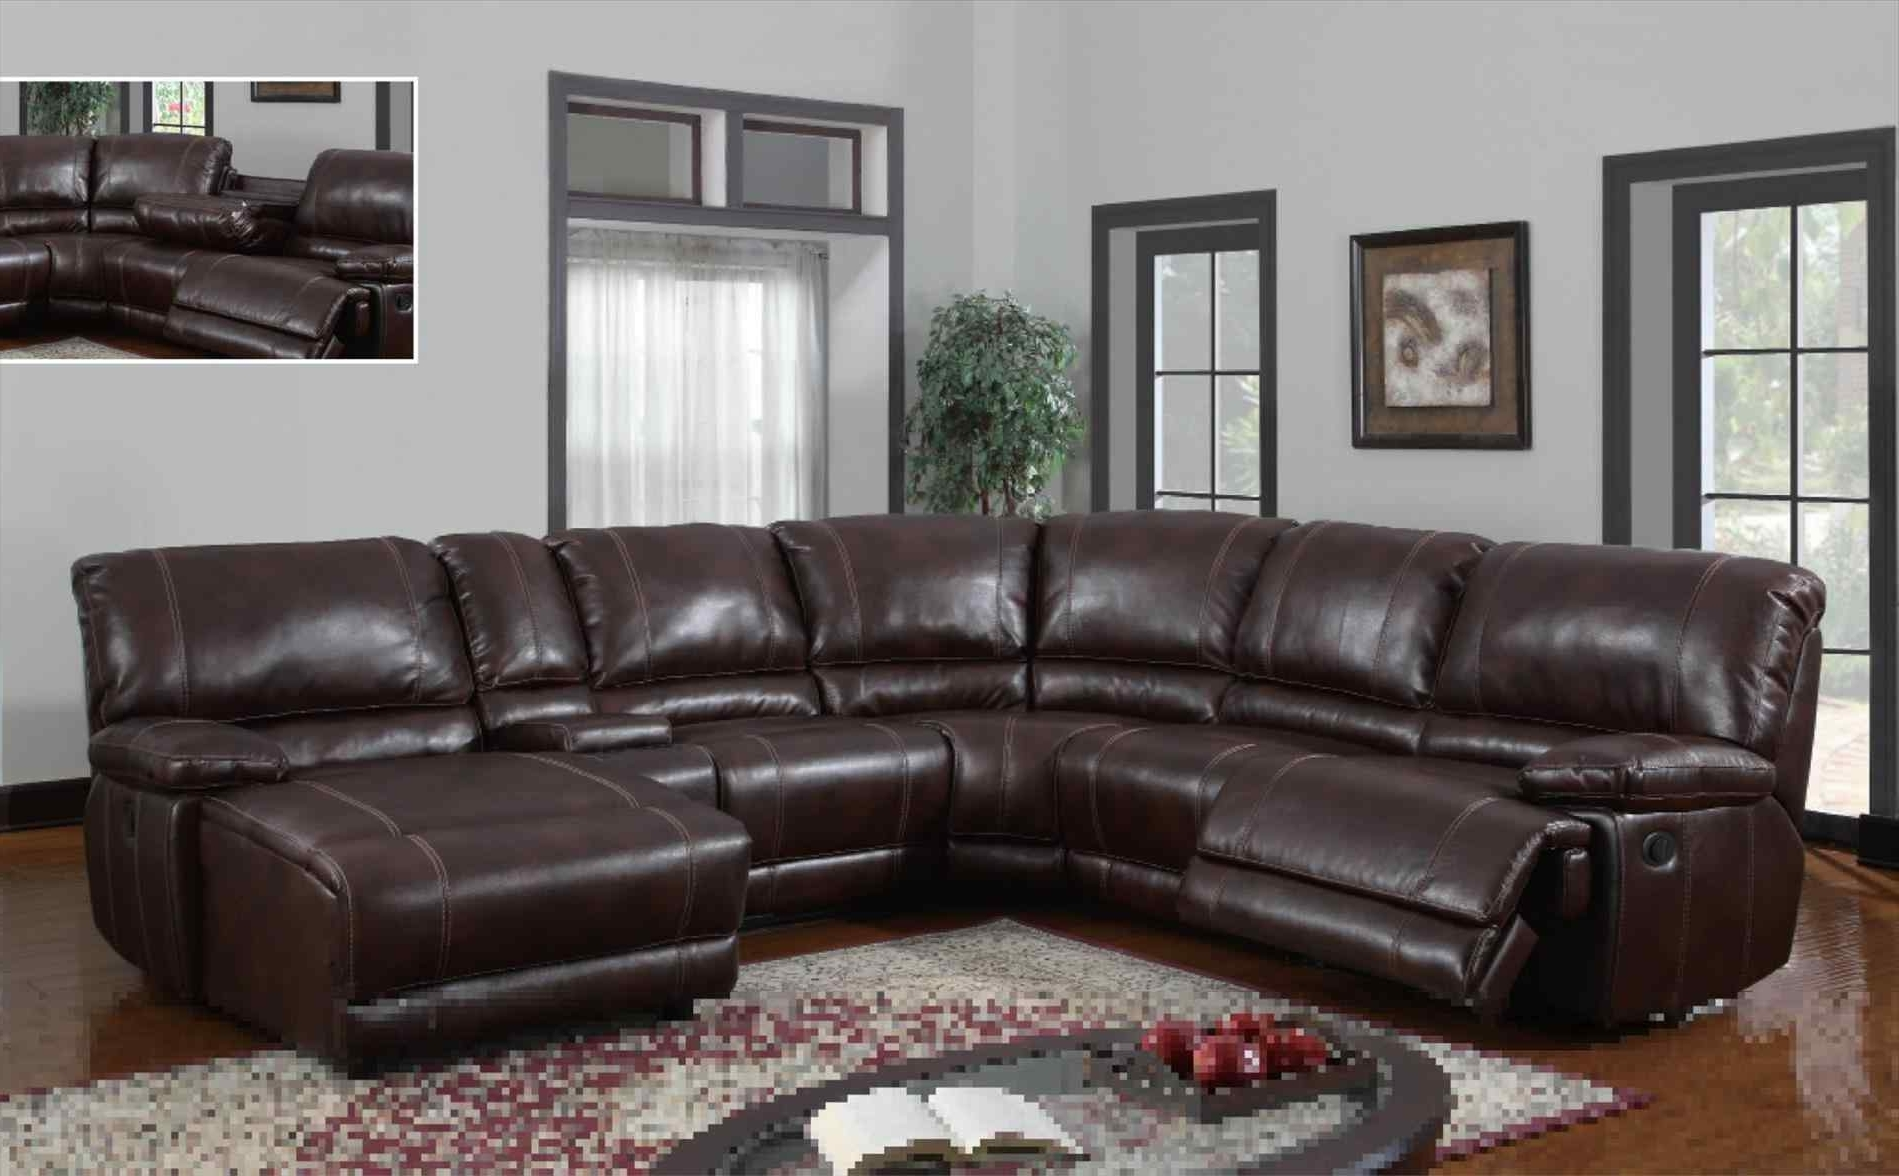 Well Known The Images Collection Of Thomasville Sectional Sofa Dining Sets With Regard To Thomasville Sectional Sofas (View 12 of 15)